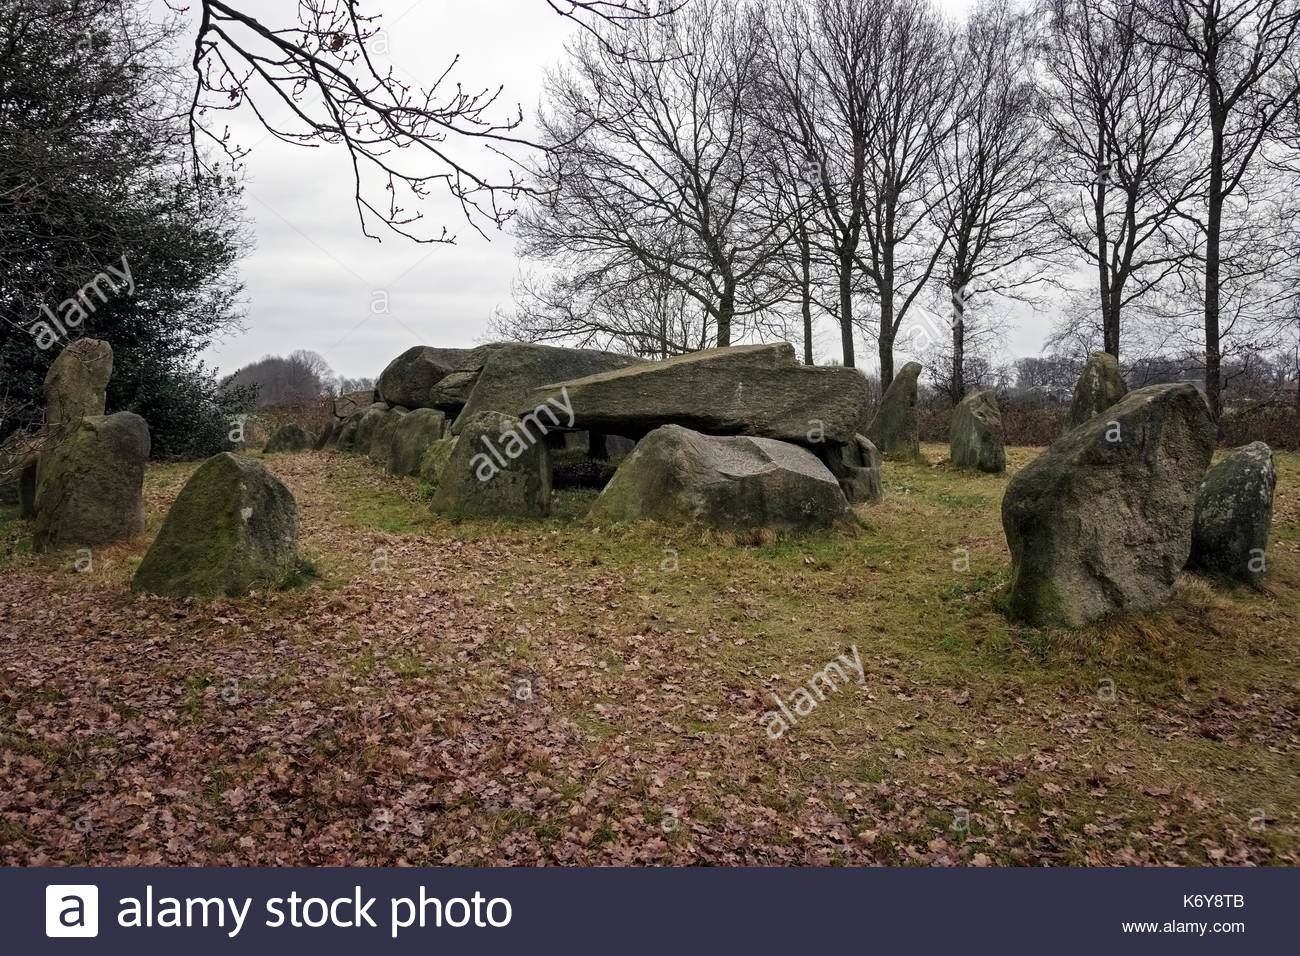 Dolmen D50, an ancient megalithic tomb in the Netherlands on a cloudy day in winter. - Stock Image